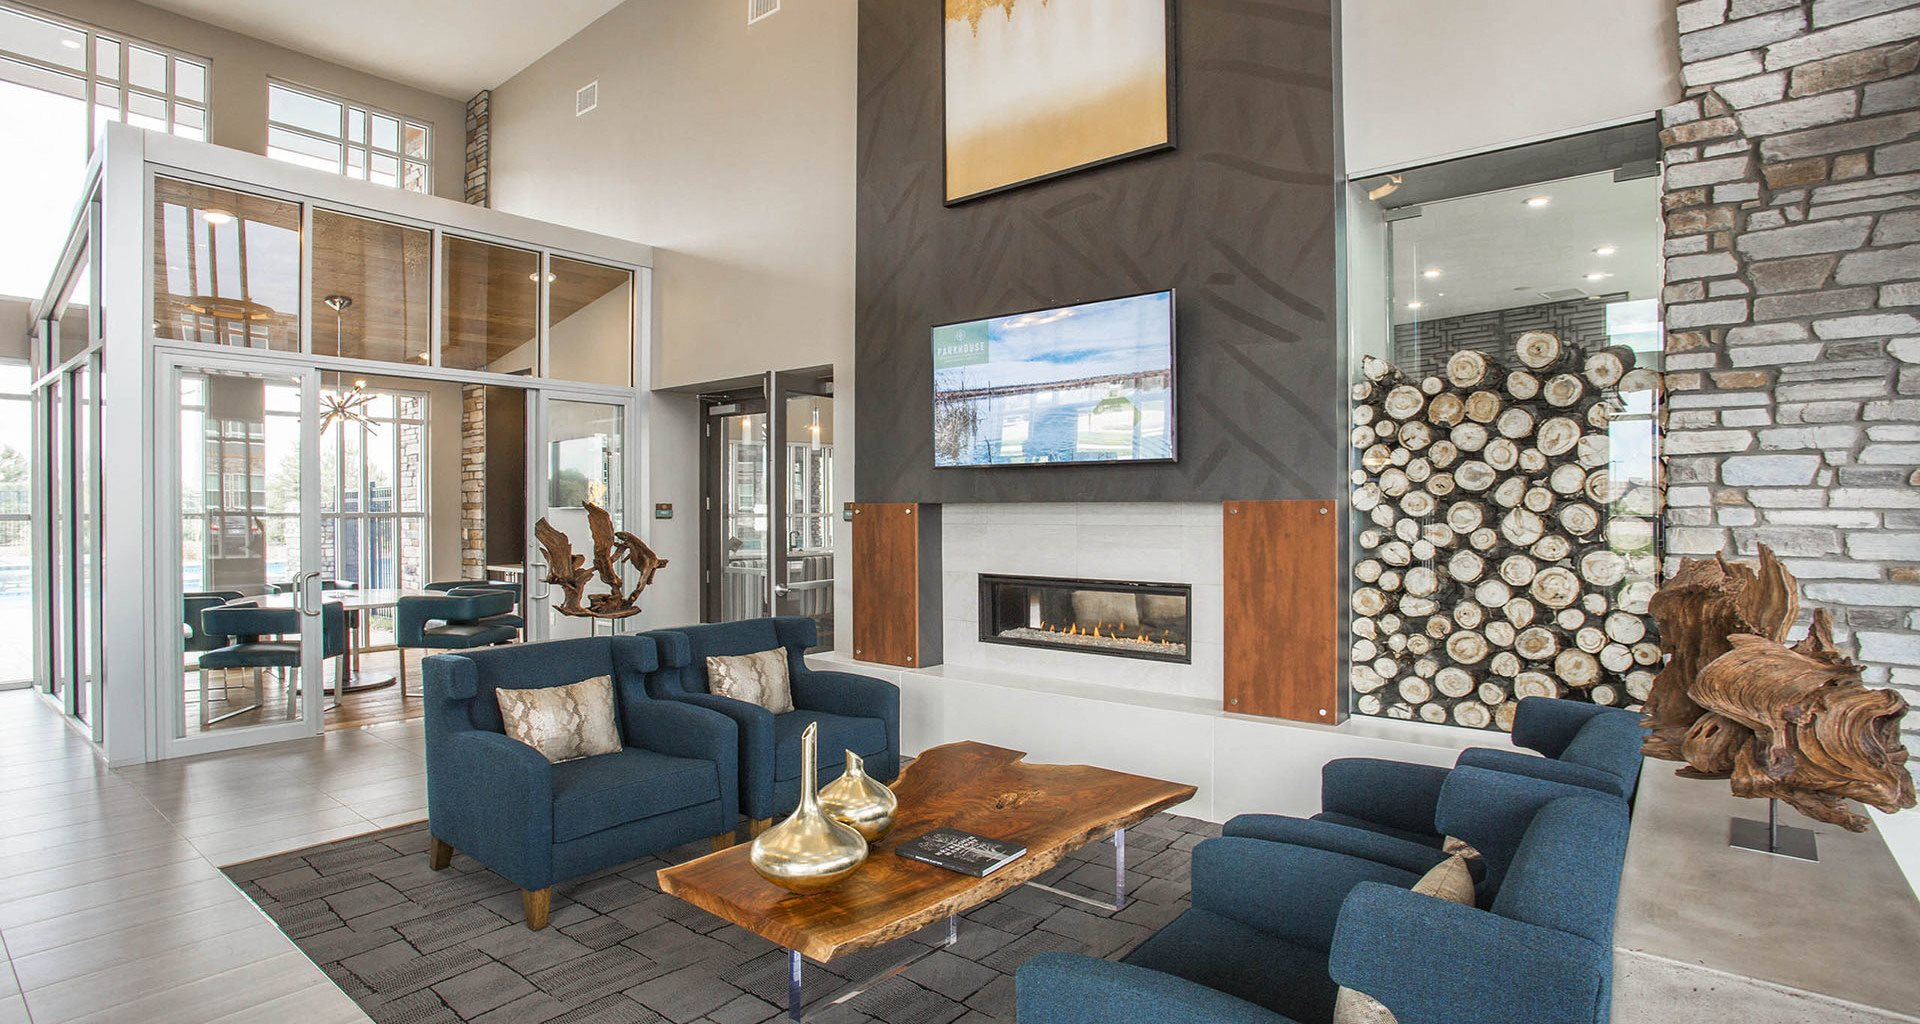 Apartments in thornton co parkhouse - 3 bedroom apartments downtown denver ...